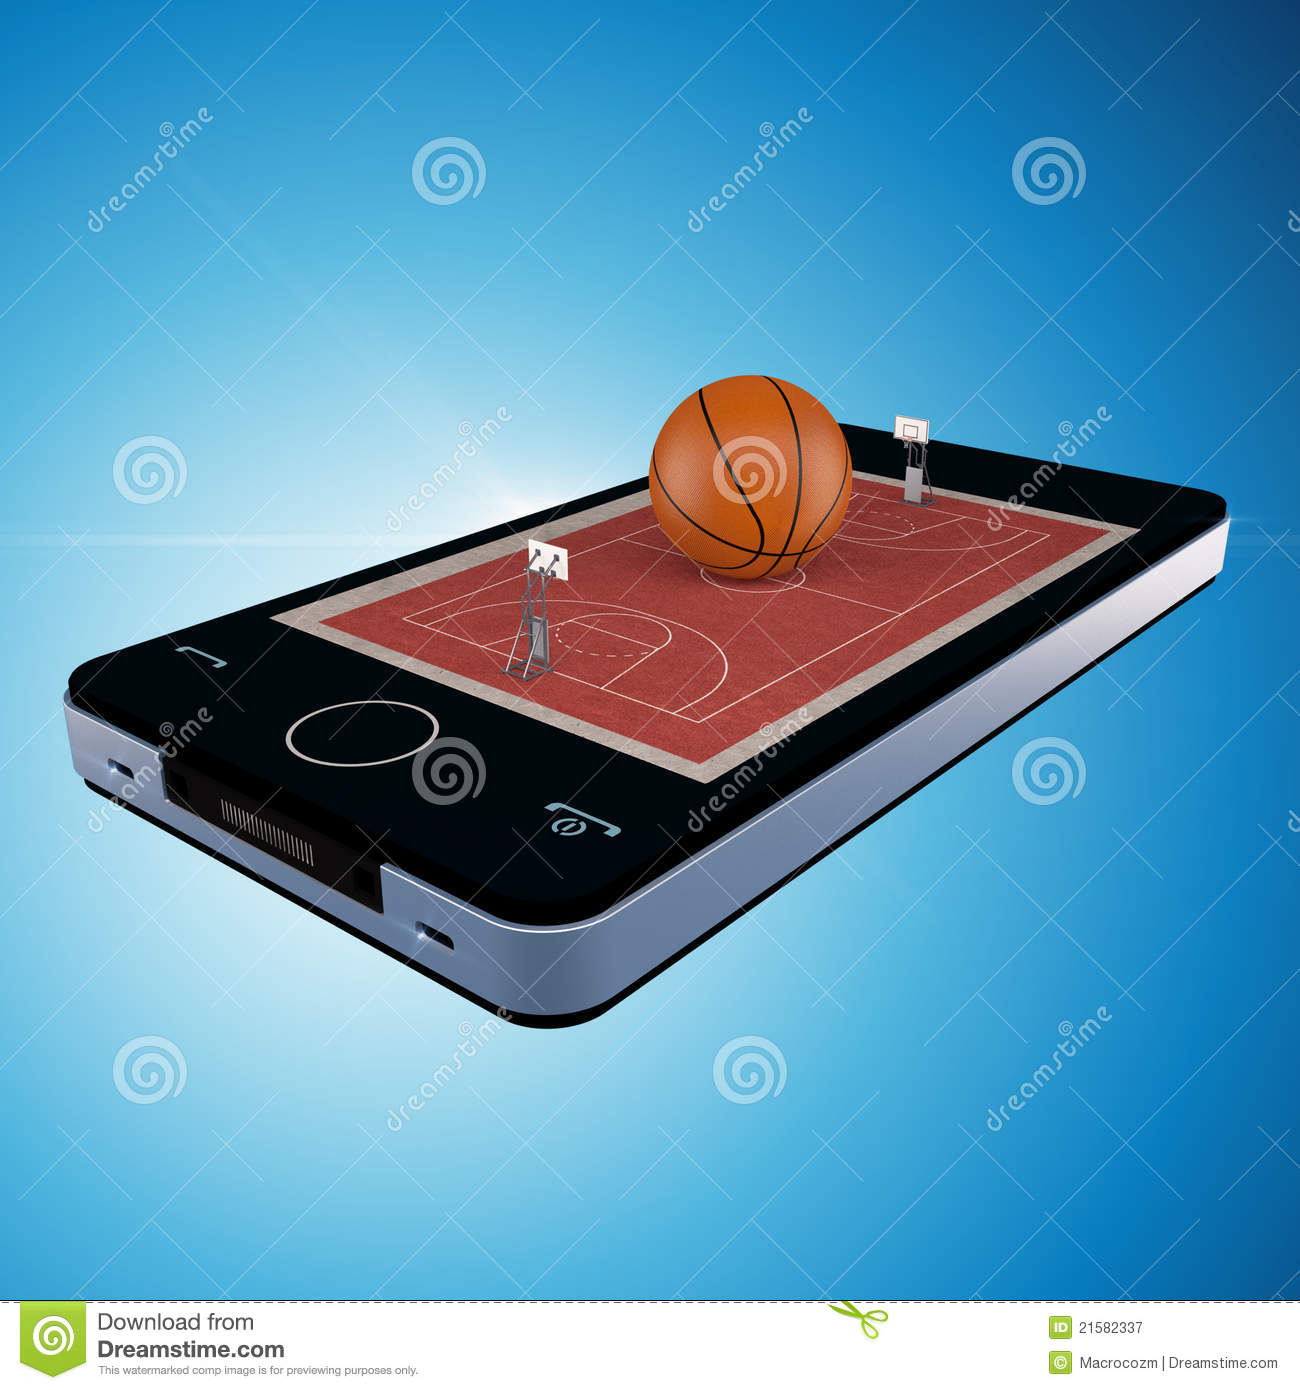 Smart phone, mobile telephone with basketball game